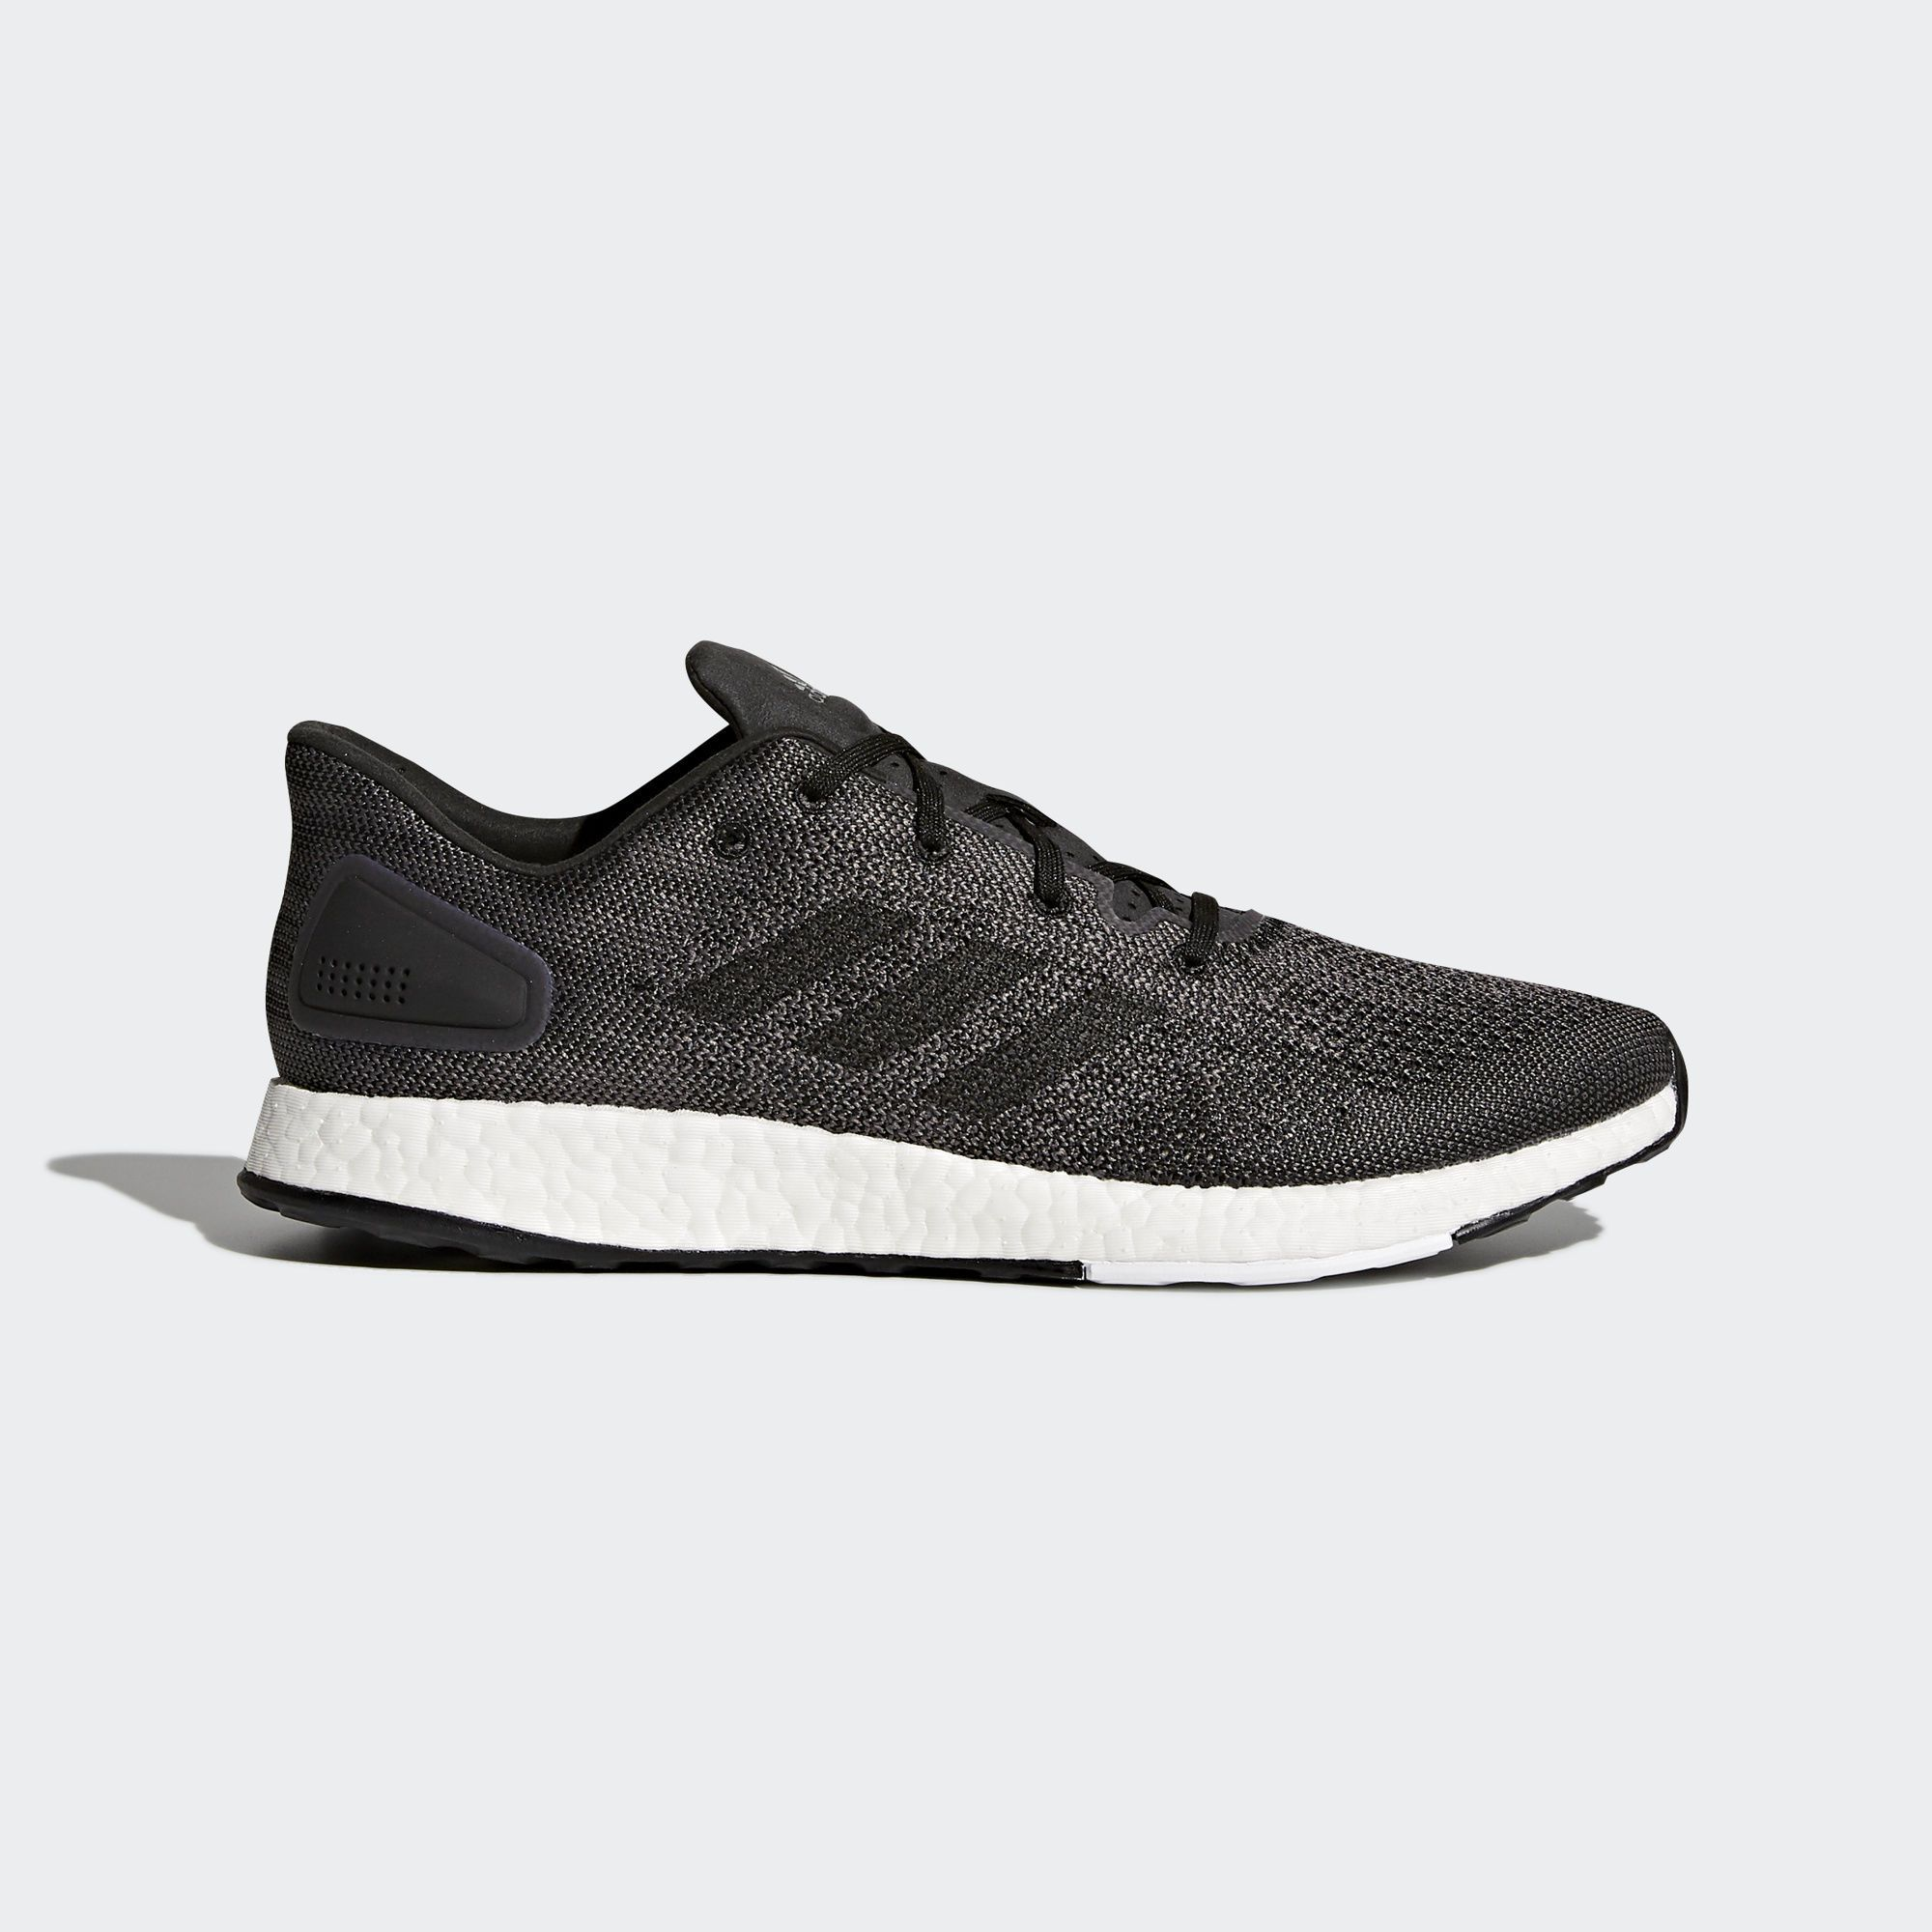 Shop For Pureboost Dpr Shoes Grey At Adidas Com Au See All The Styles And Colours Of Pureboost Dpr Sho Adidas Pure Boost Adidas Online Running Shoes For Men